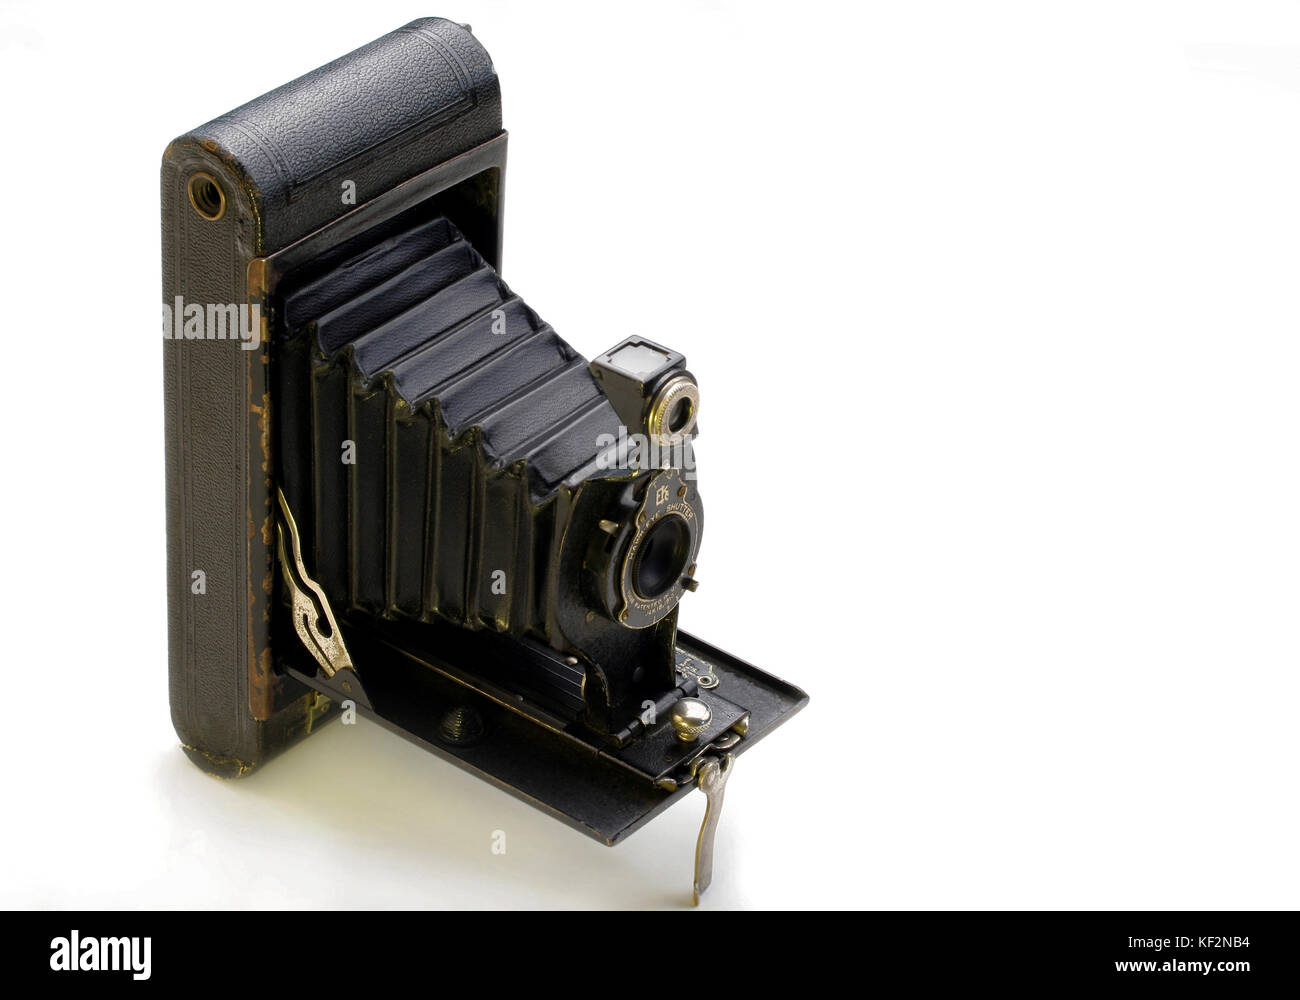 One vintage black box camera isolated on white with copy space. - Stock Image